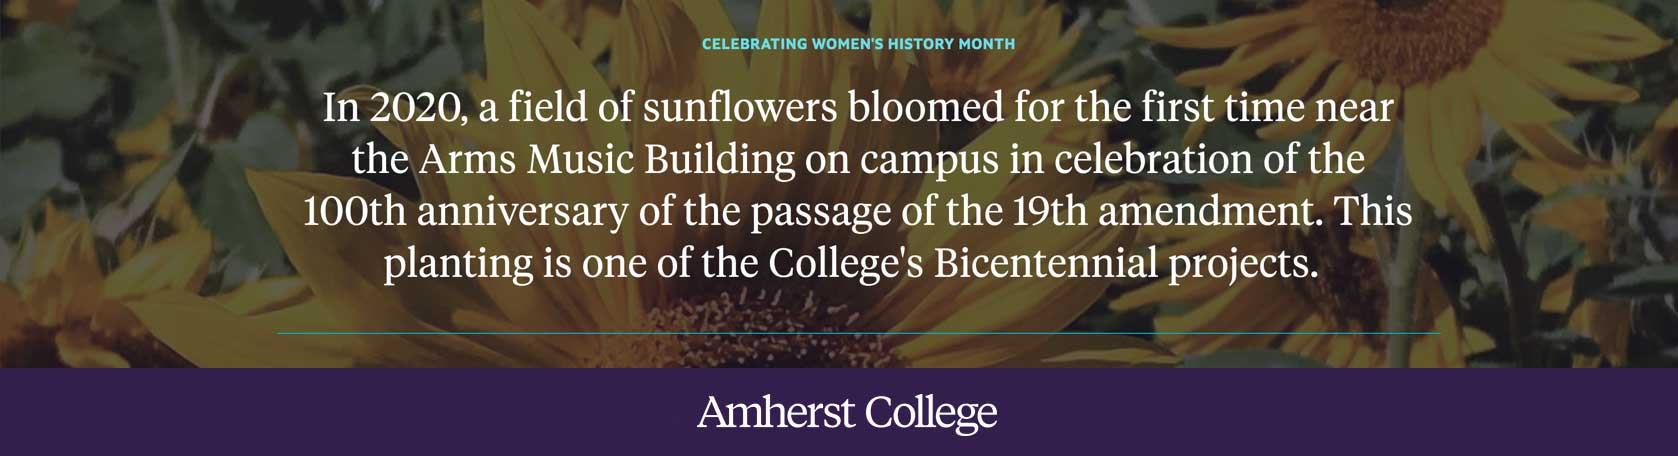 In 2020 a field of sunflowers was planted on campus to celebrate the 100th anniversary of the passage of the 19th amendment